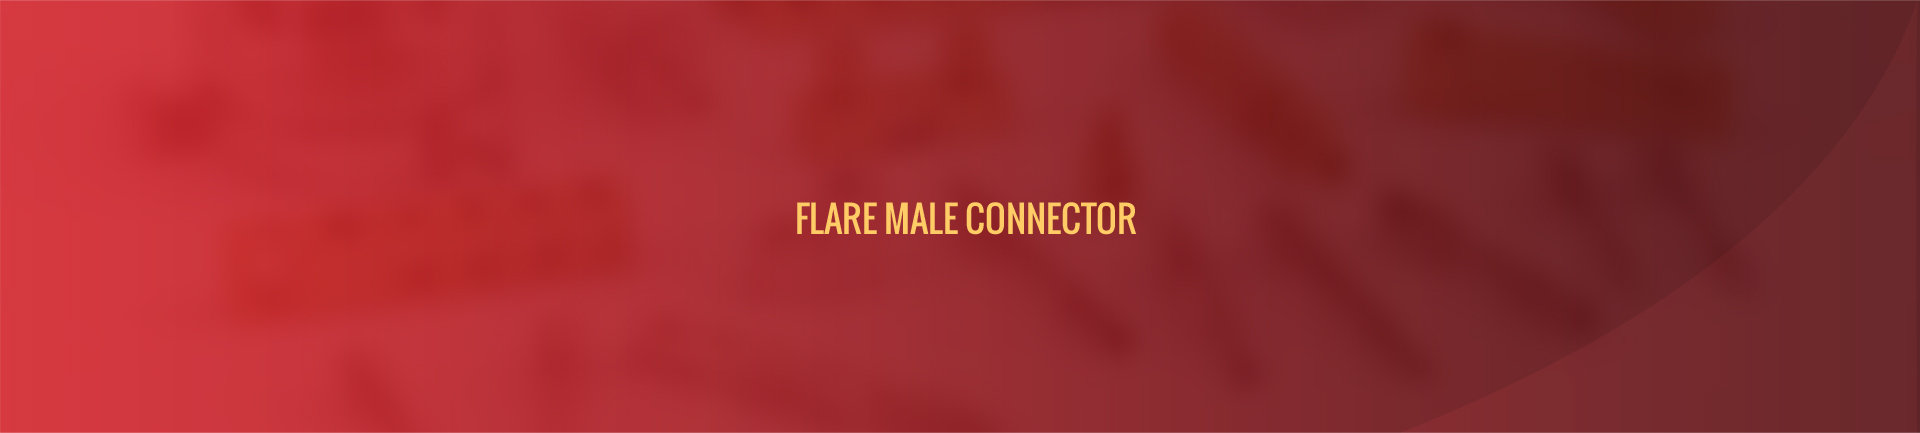 flare-male-connector-banner